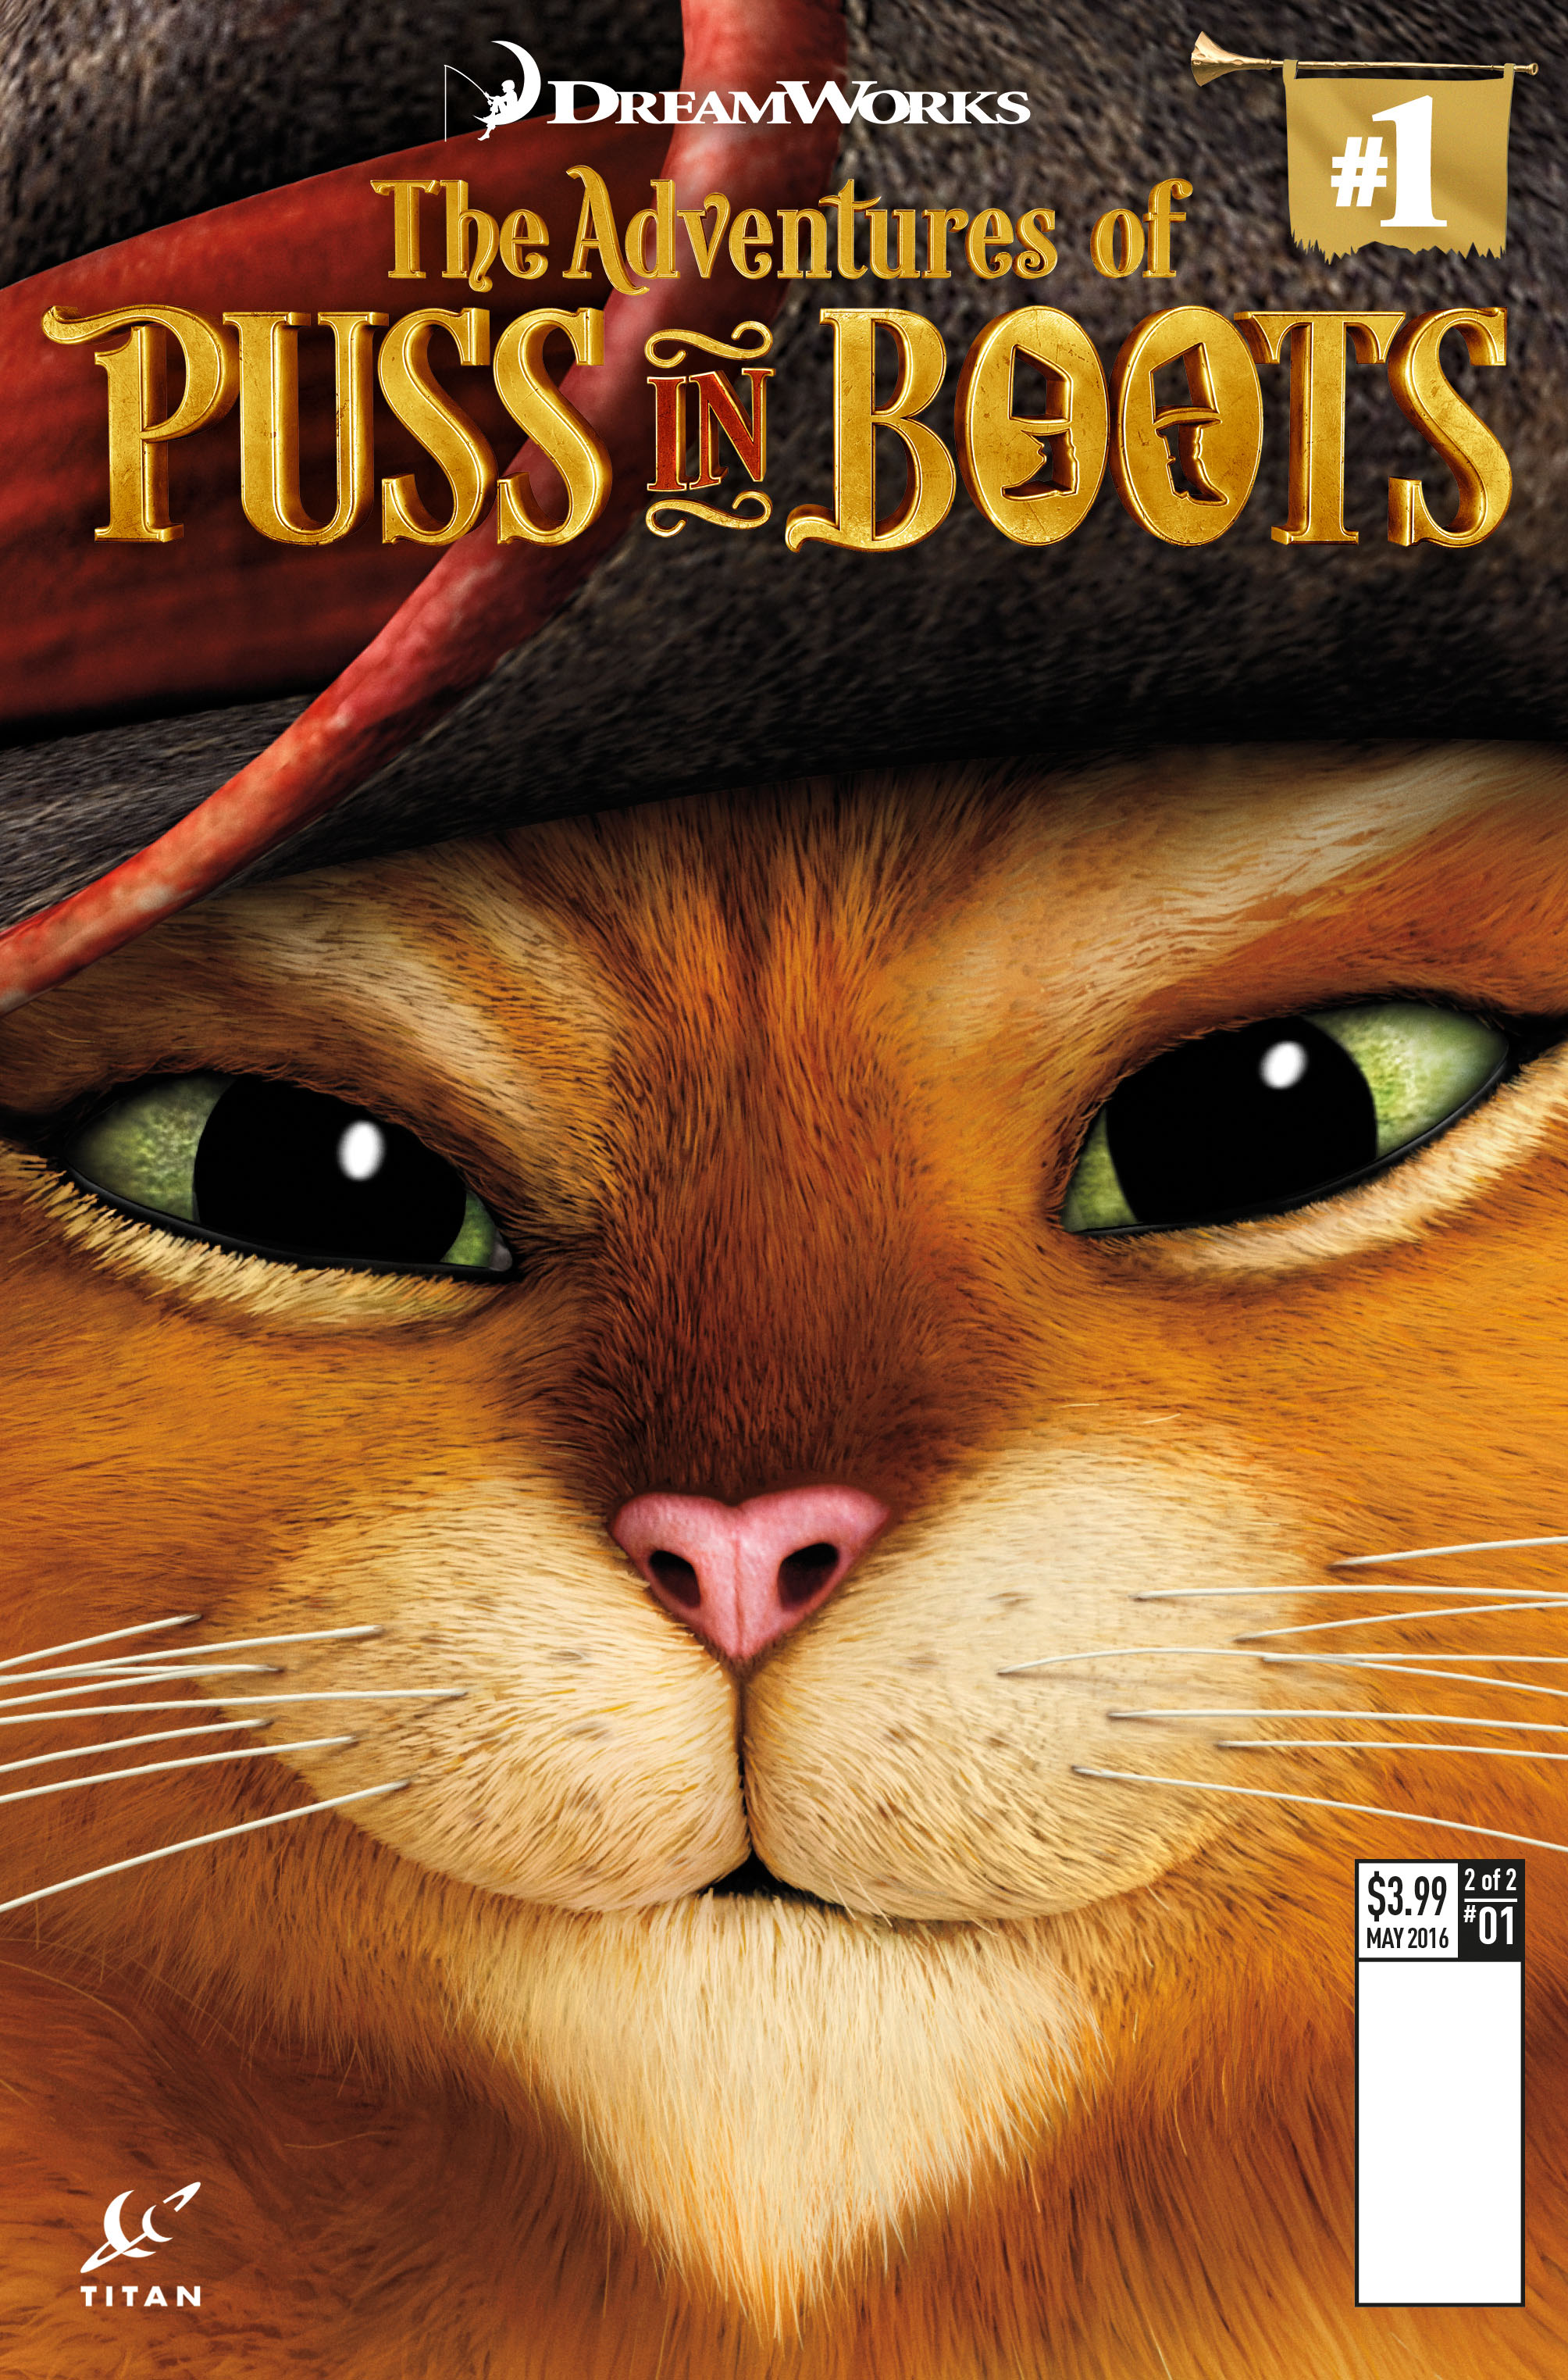 Puss In Boots #1 Film Art Cover